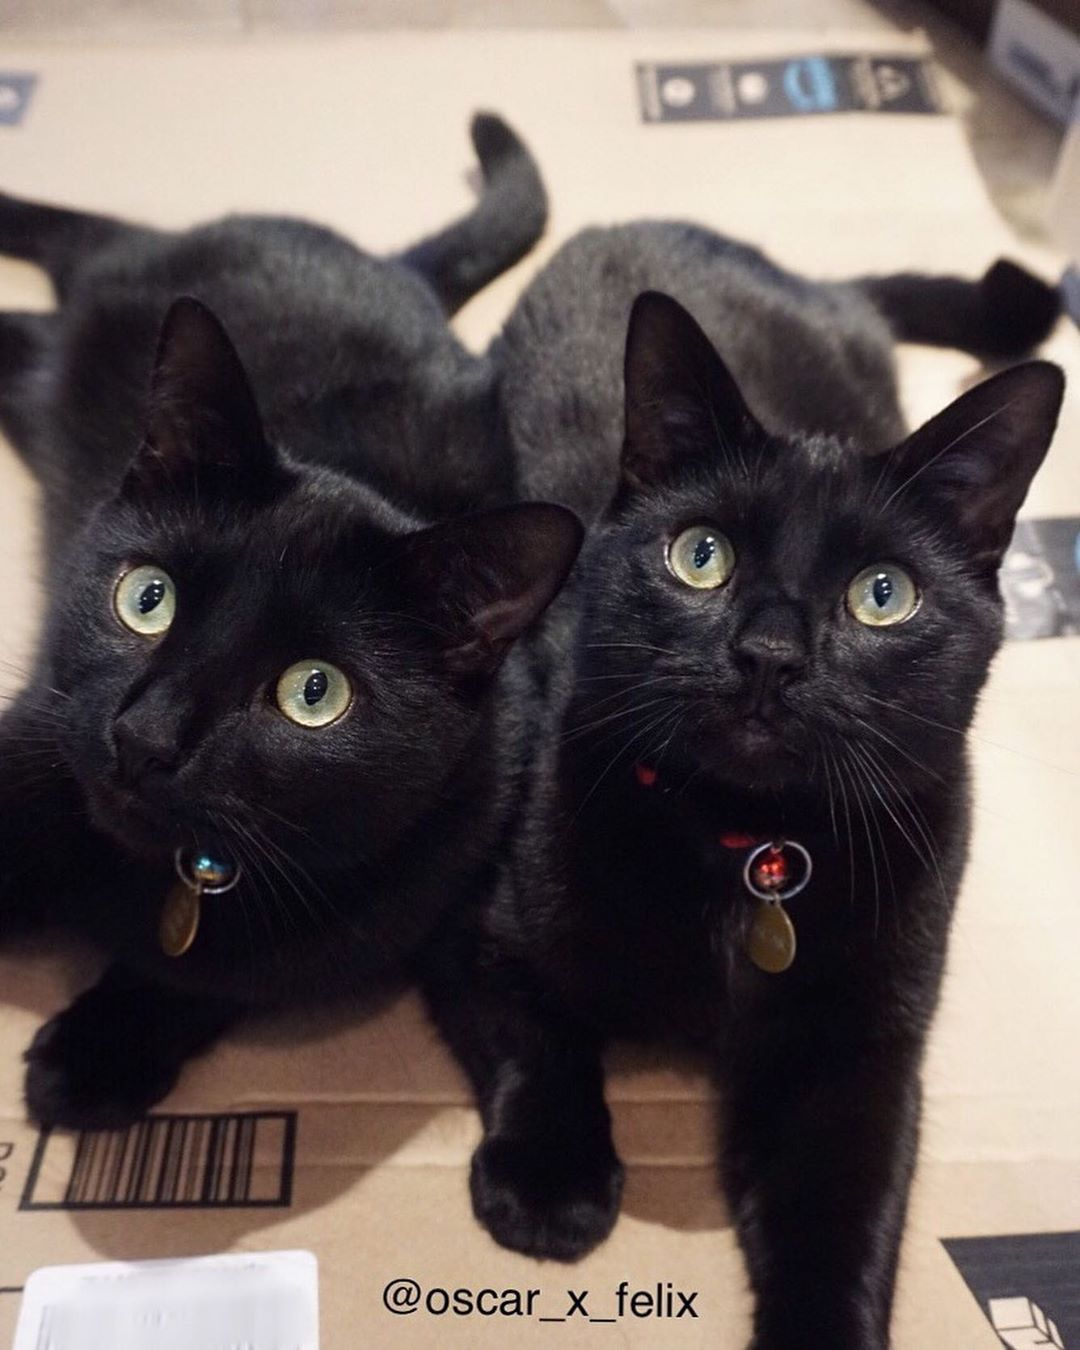 It's blackcatappreciationday !! We just want to let you